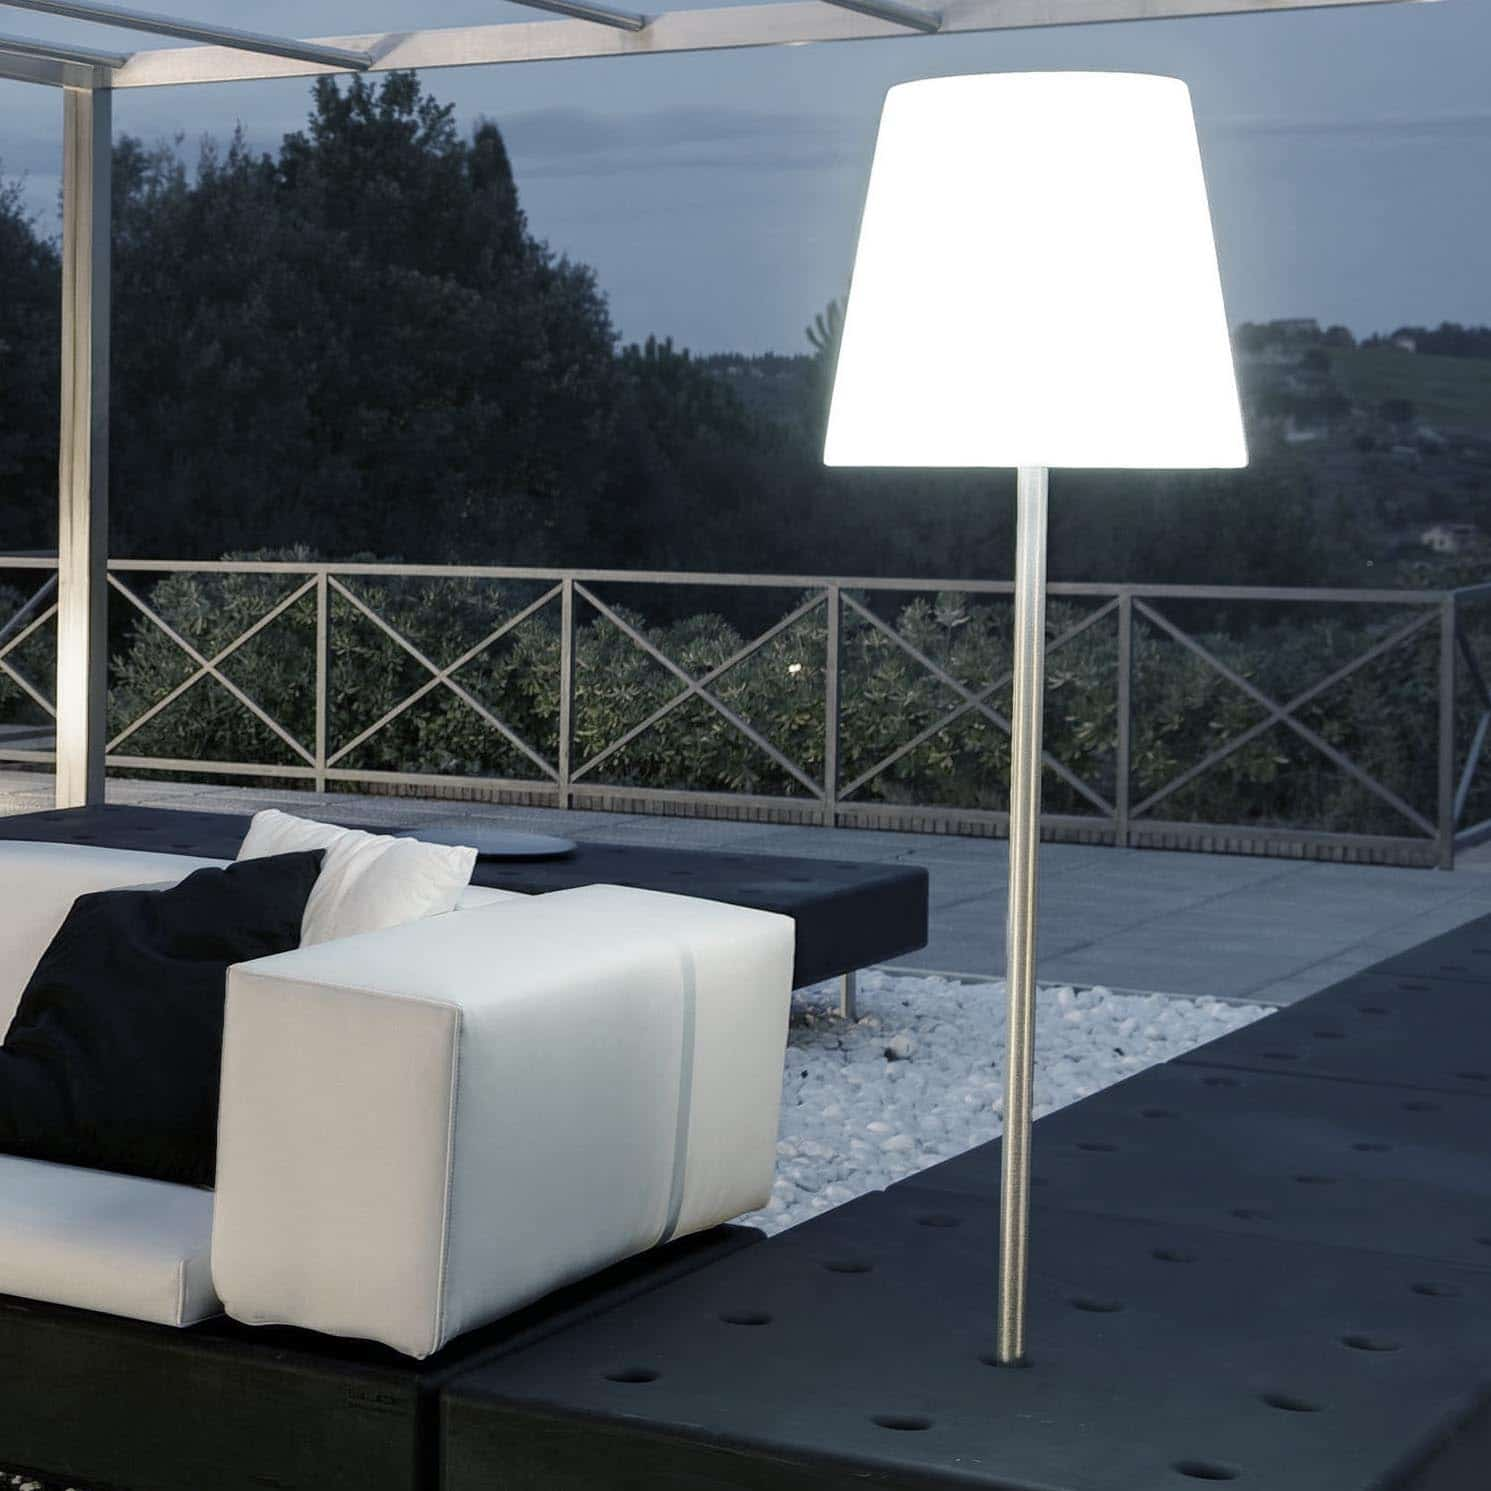 steck gartenleuchte slide fiaccola ali baba f r blumentr ge erdreich. Black Bedroom Furniture Sets. Home Design Ideas